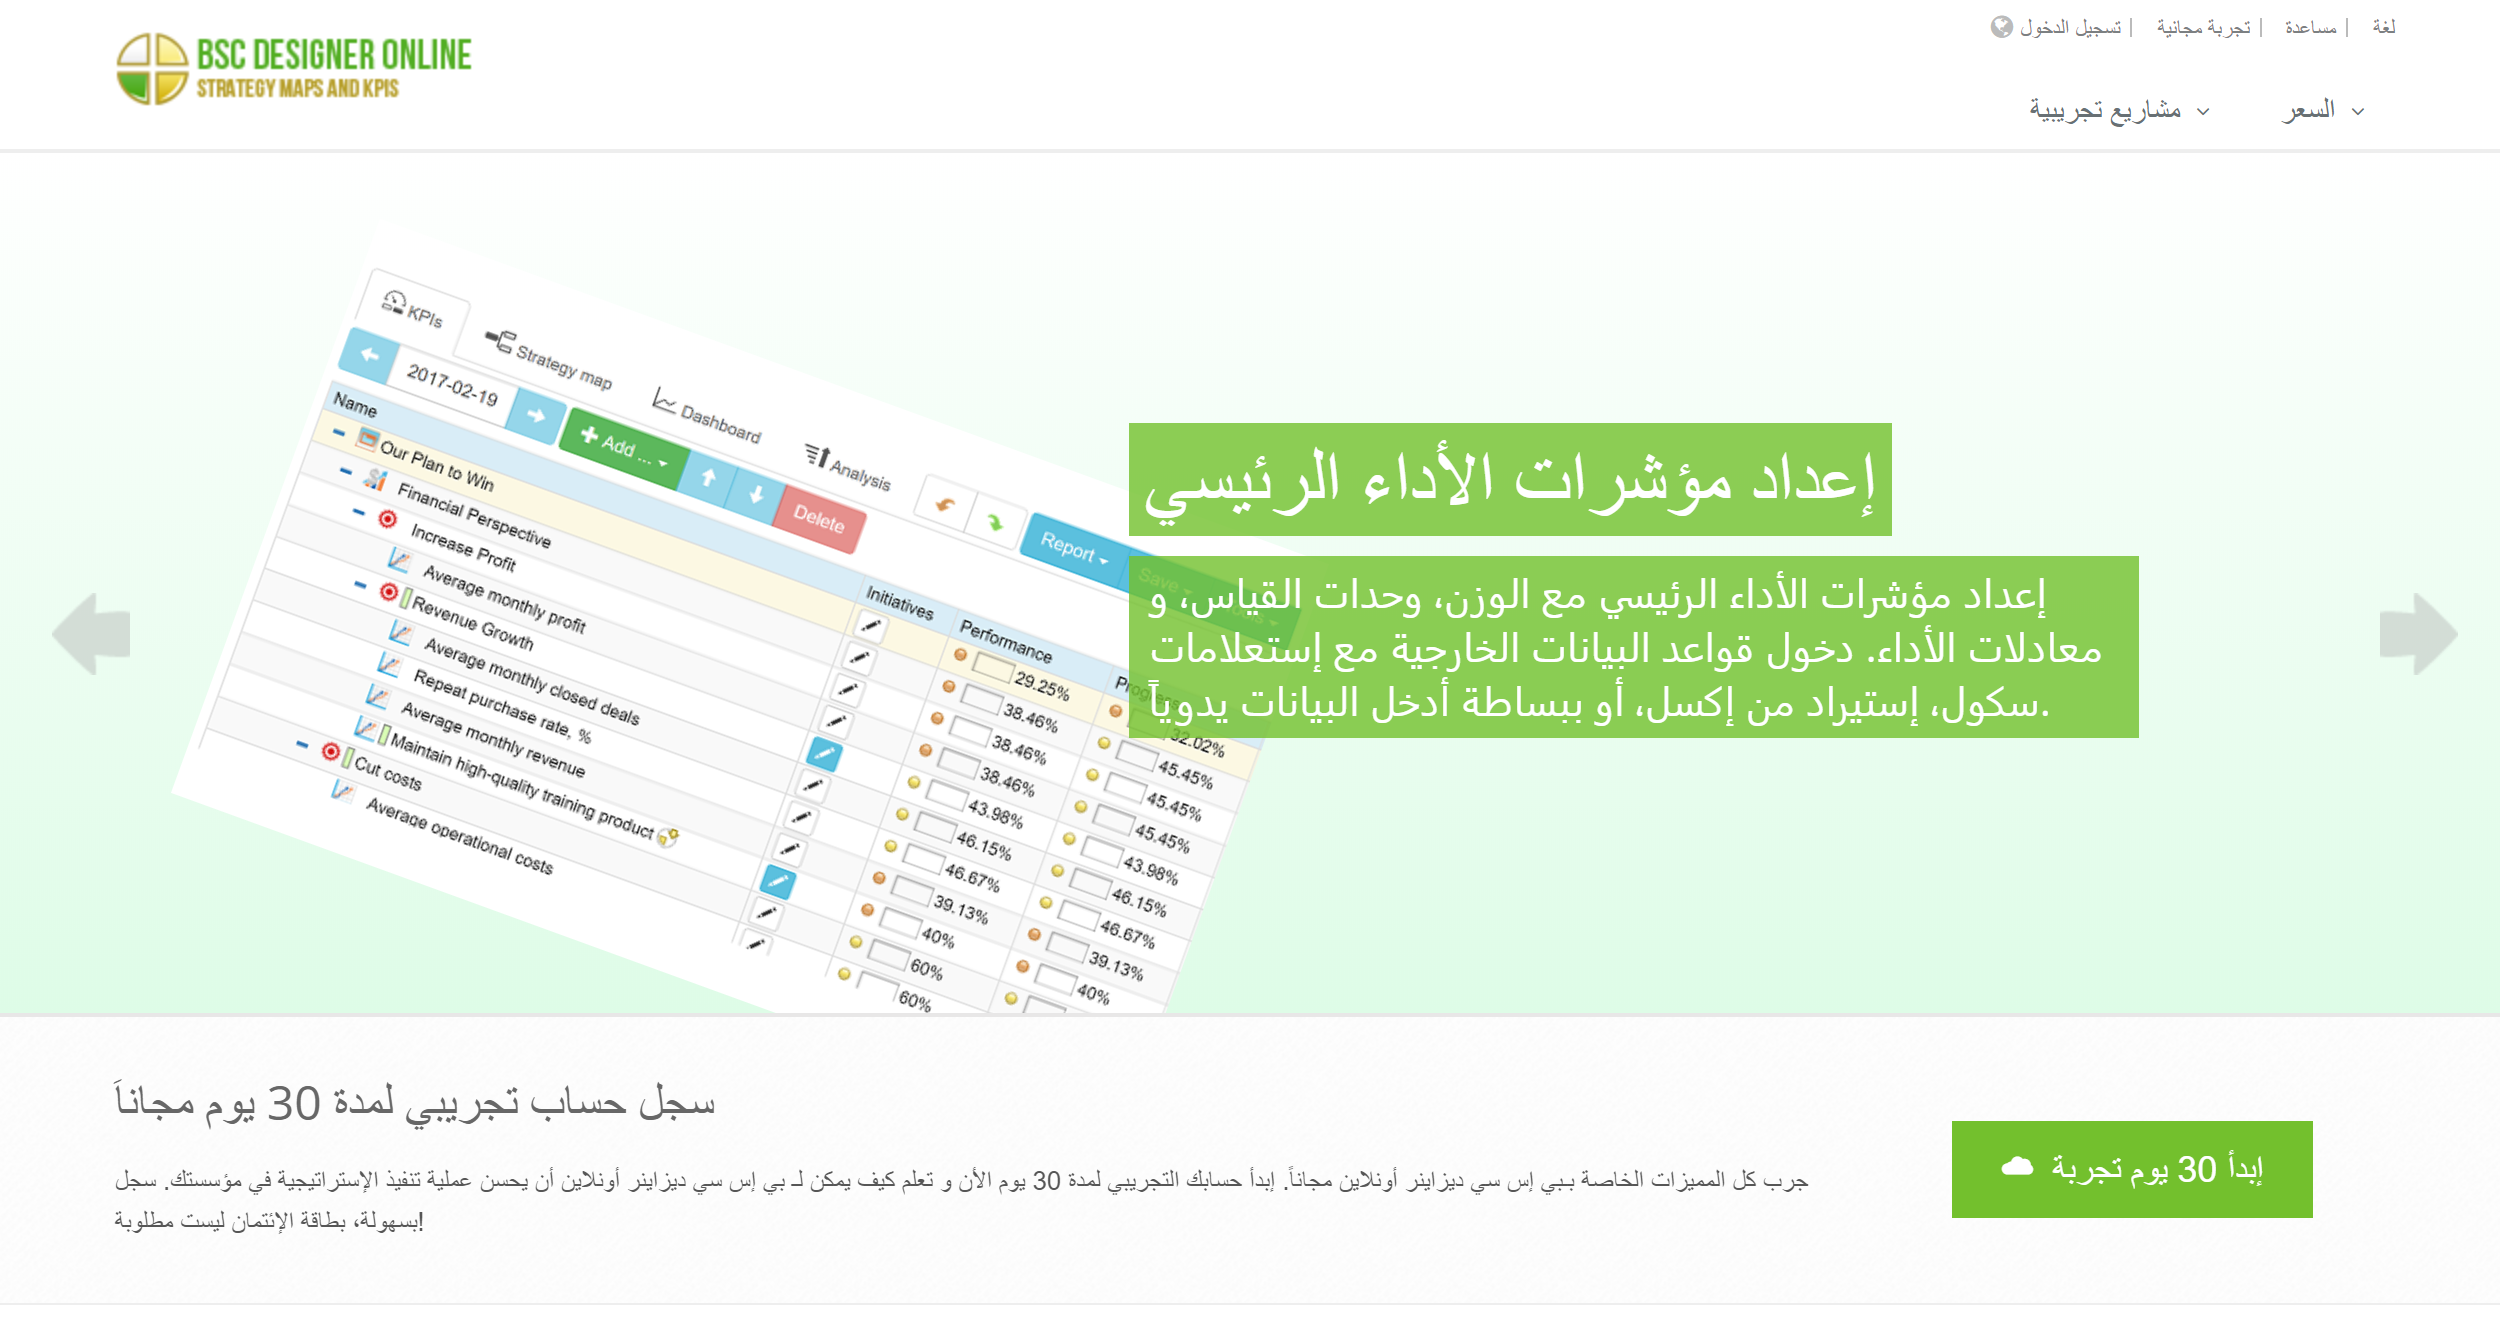 Arabic version of BSC Designer Online